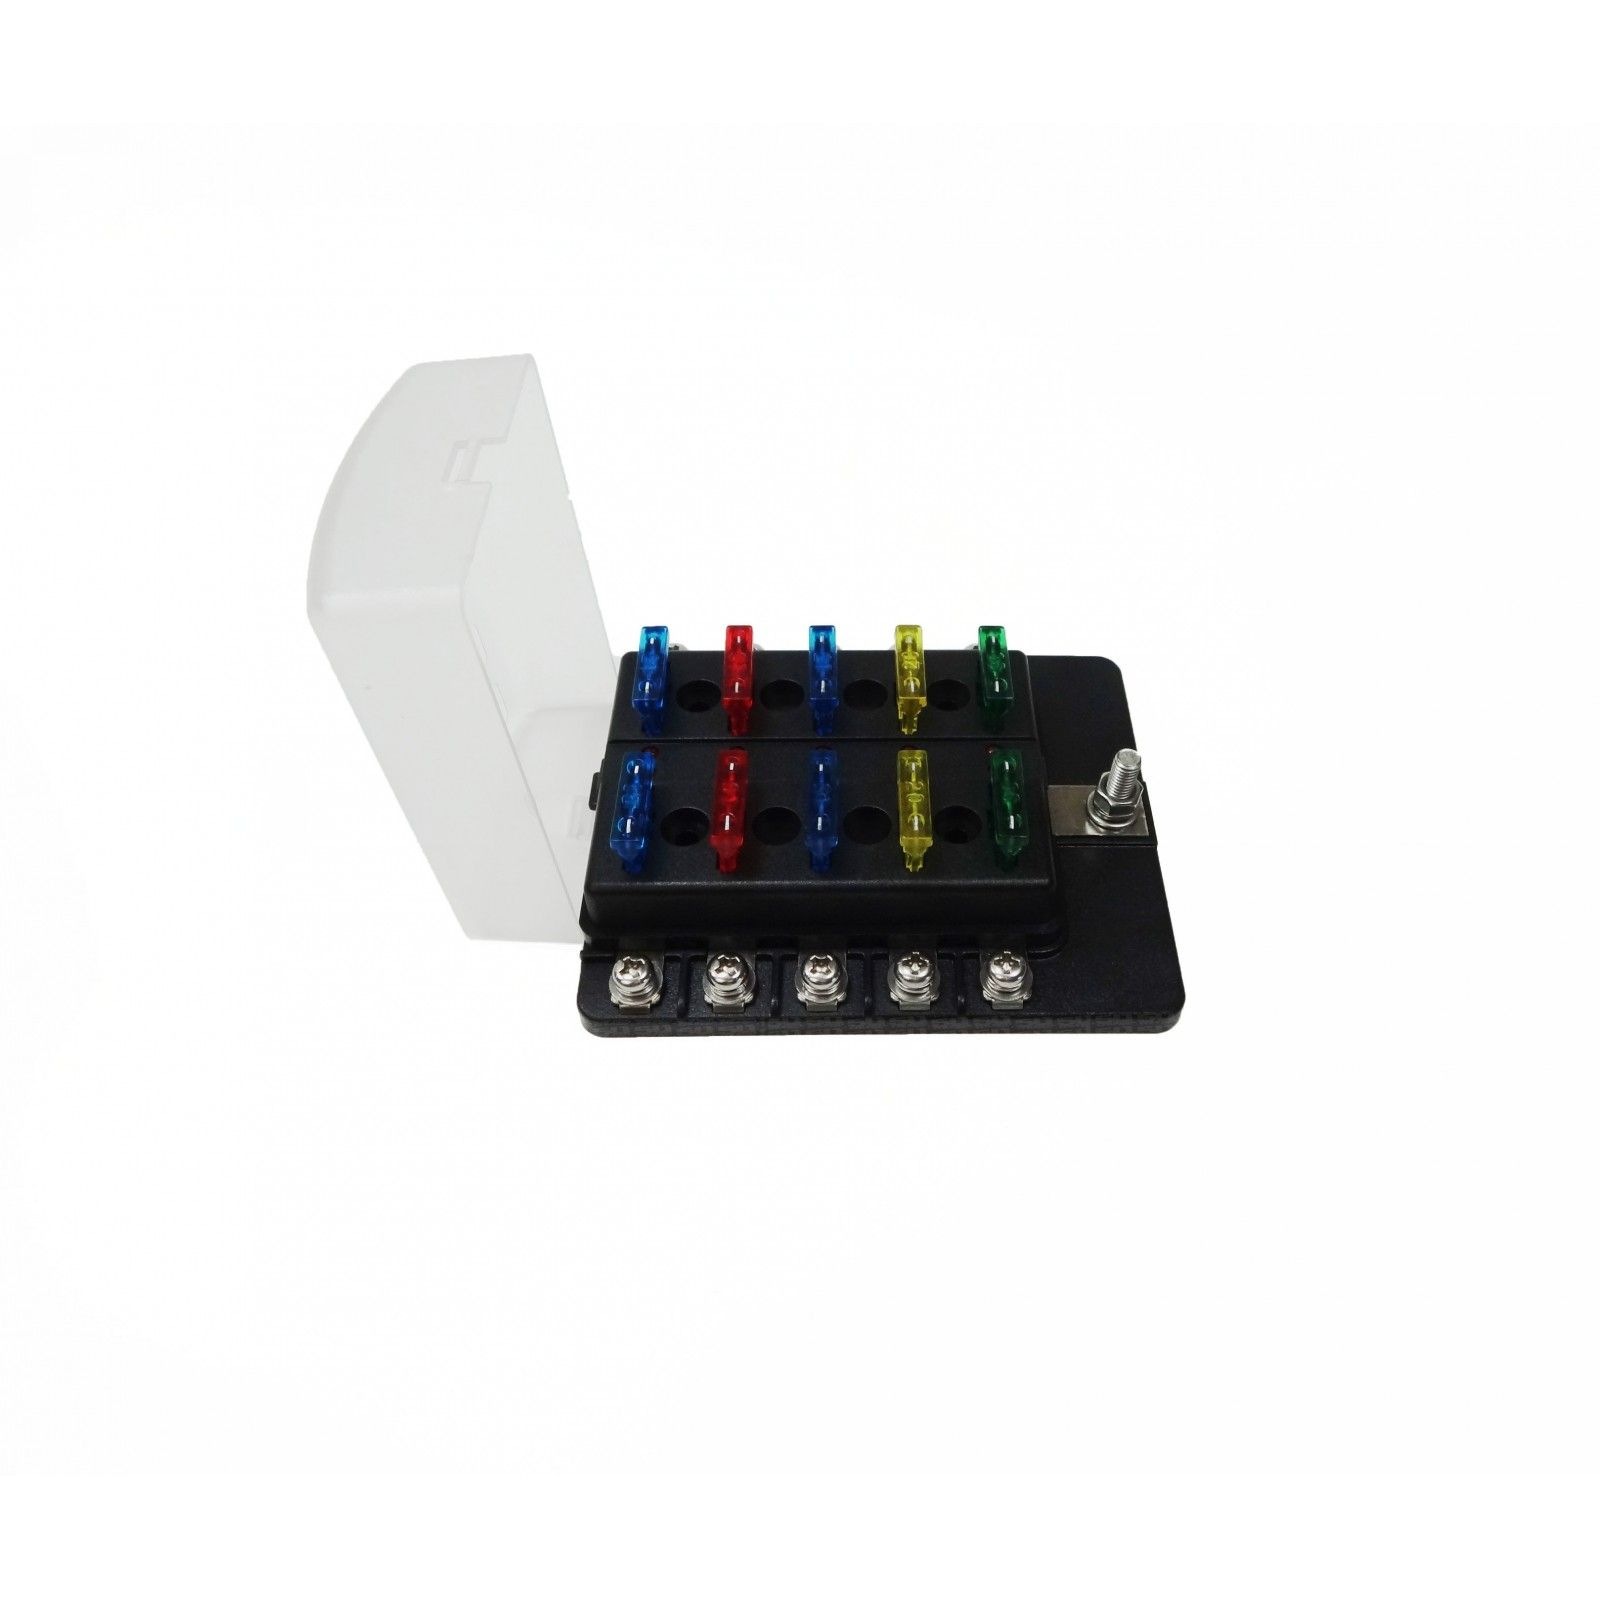 12v Fuse Box Wire Connectors Electrical Wiring Diagrams Universal 10 Way Covered Circuit Blade Distribution Block